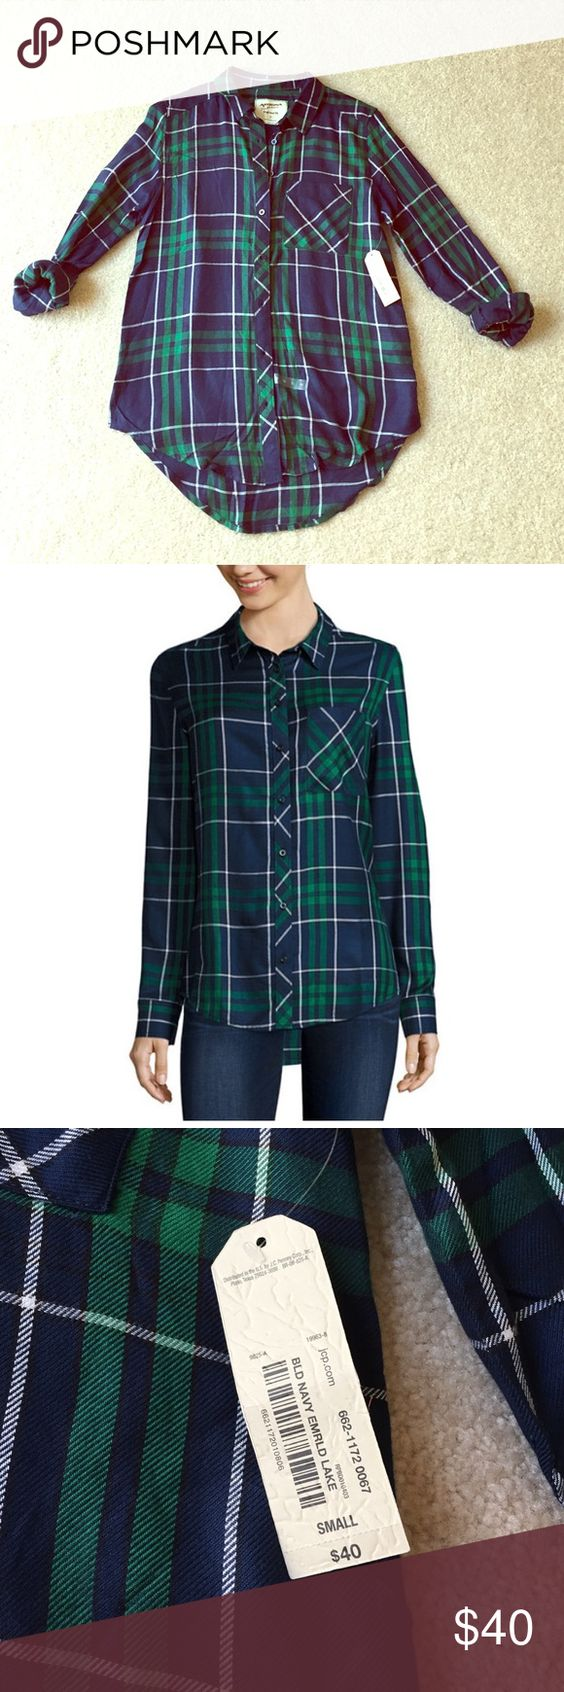 Arizona plaid shirt top S navy green white Brand new with tags. Very soft and comfy. Perfect for fall. Arizona Jean Company Tops